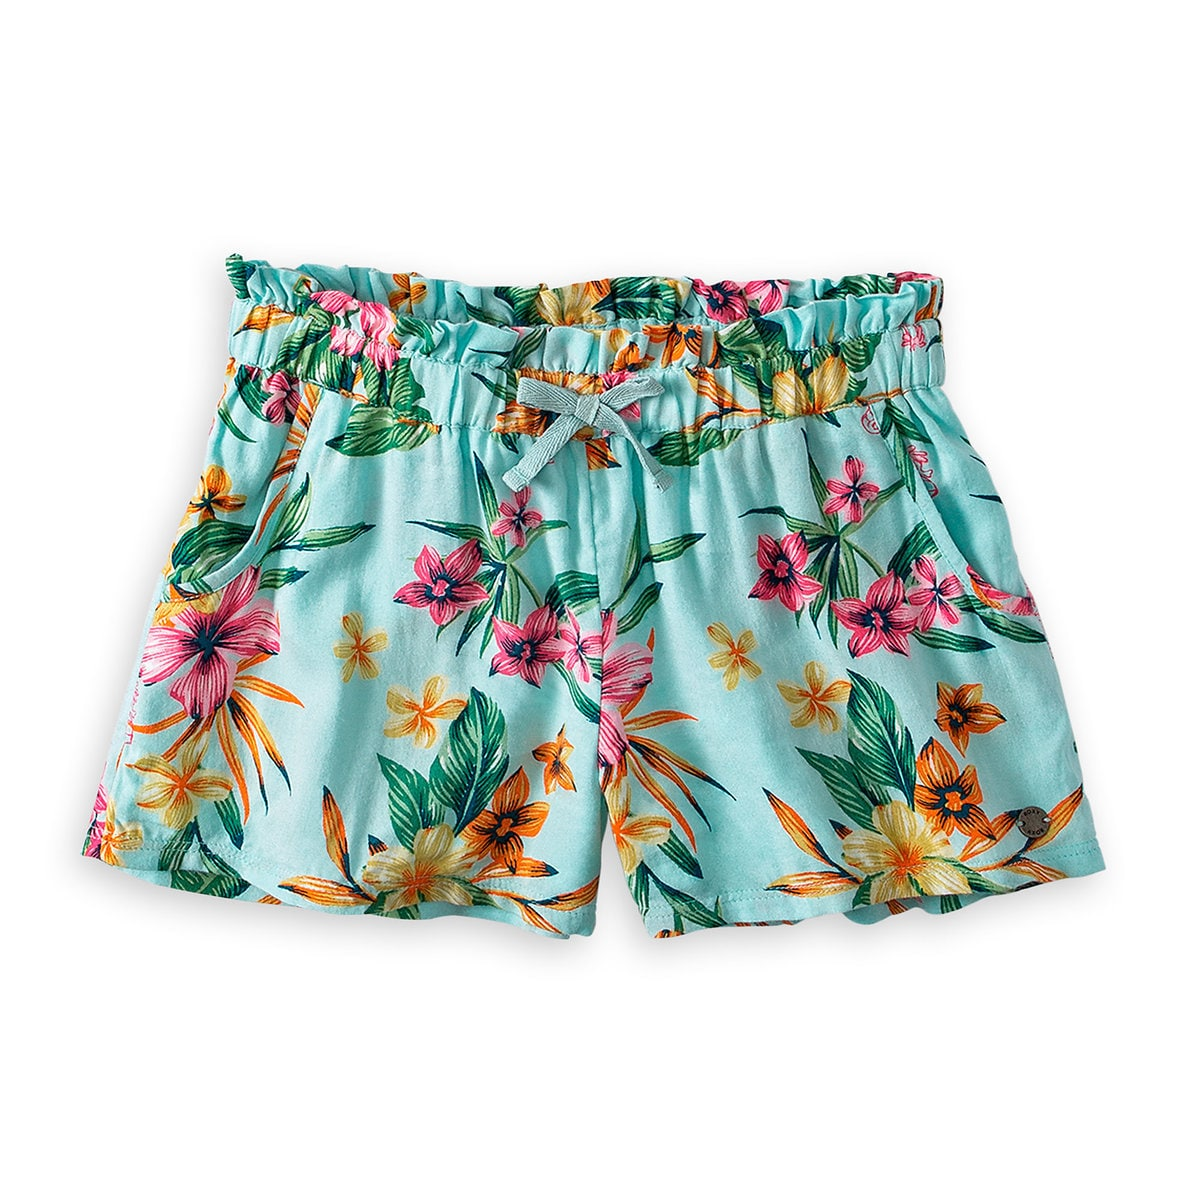 743de8c4e5 Product Image of The Little Mermaid Shorts for Girls by ROXY Girl # 1